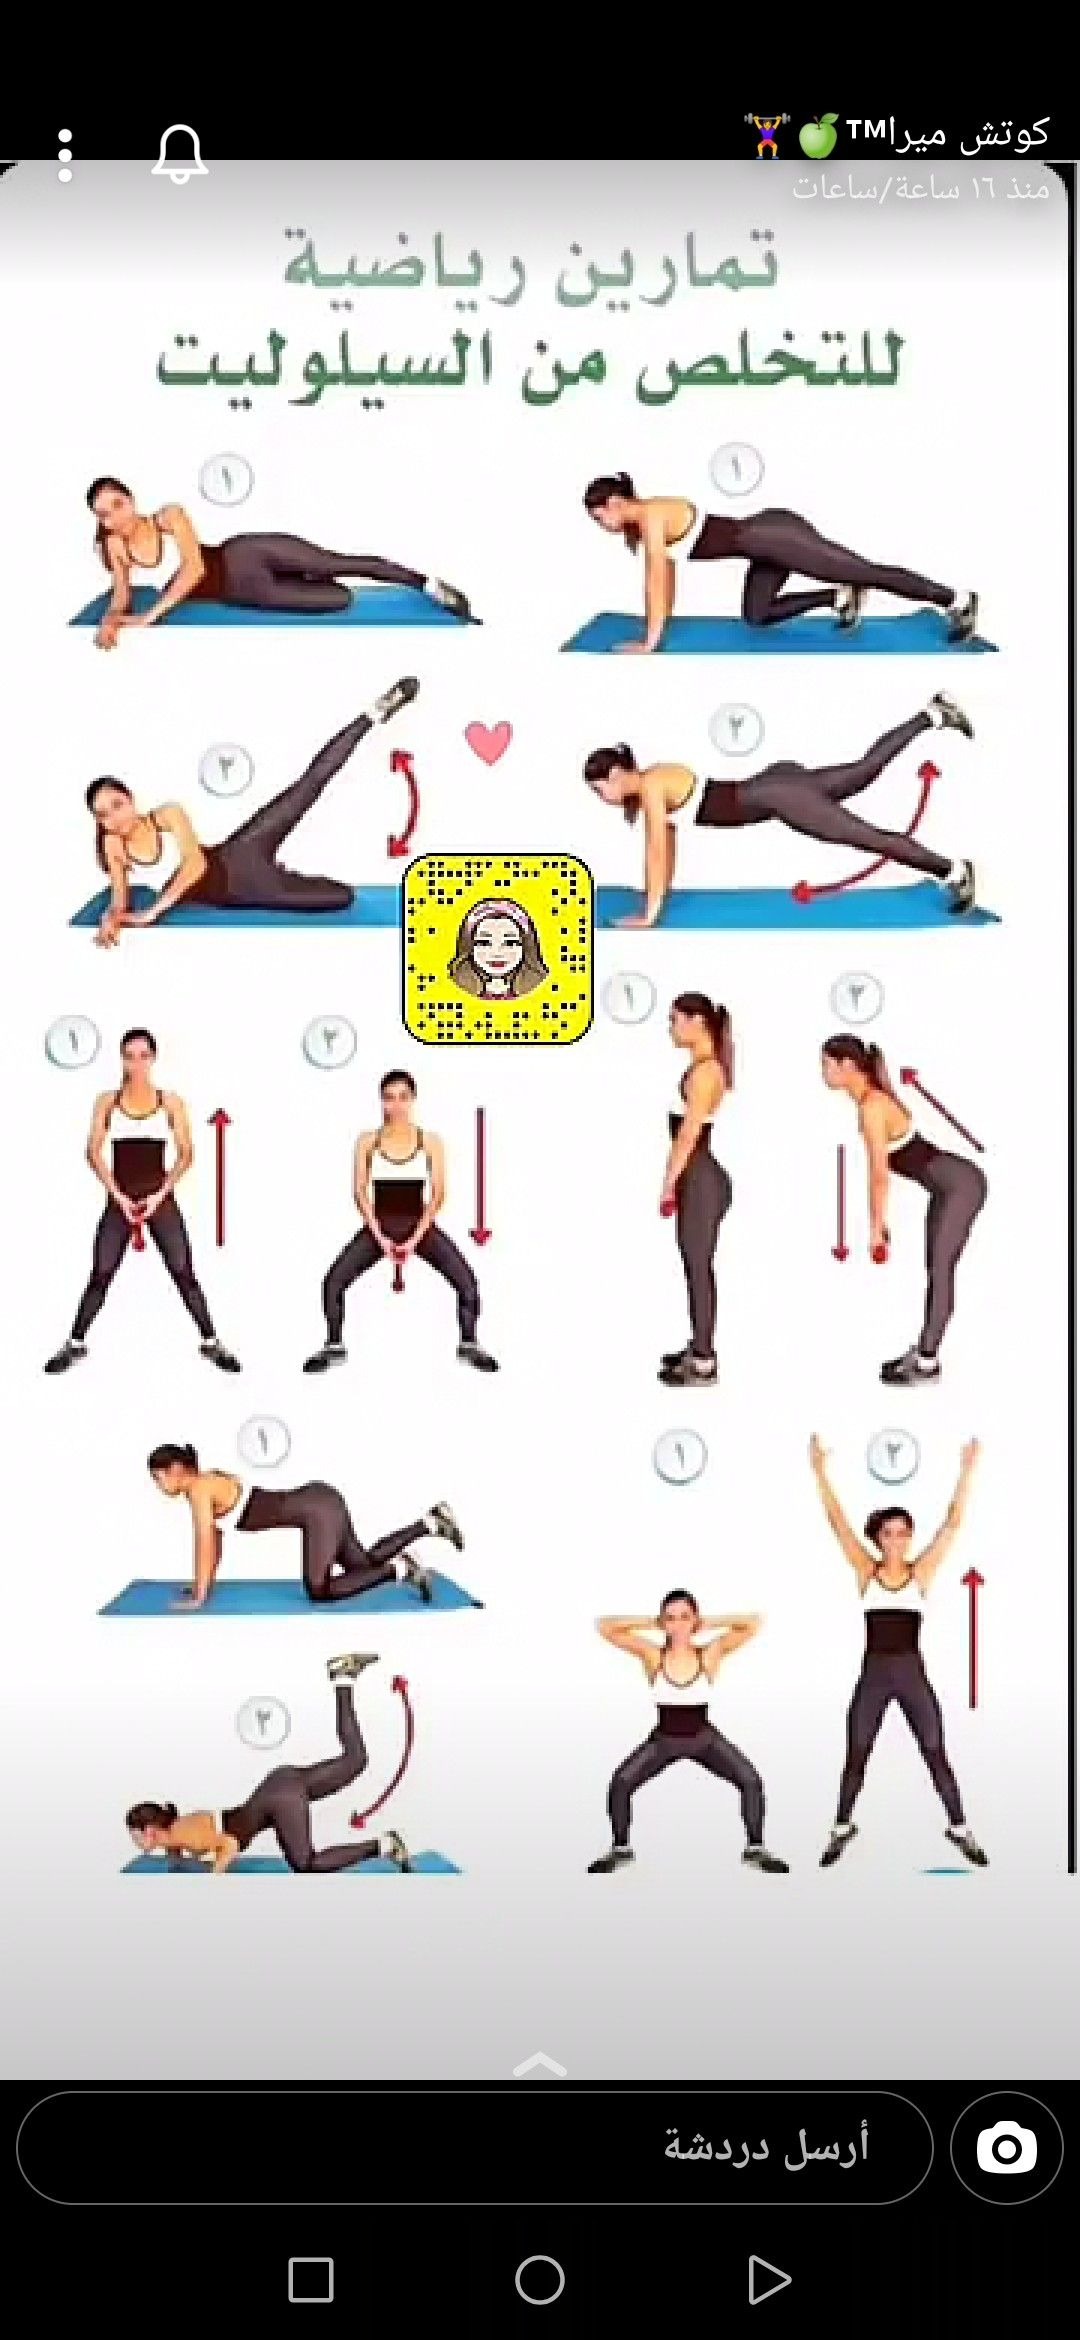 Pin By Bwilson On Exercises Fitness Workout For Women Workout Guide Sports Health